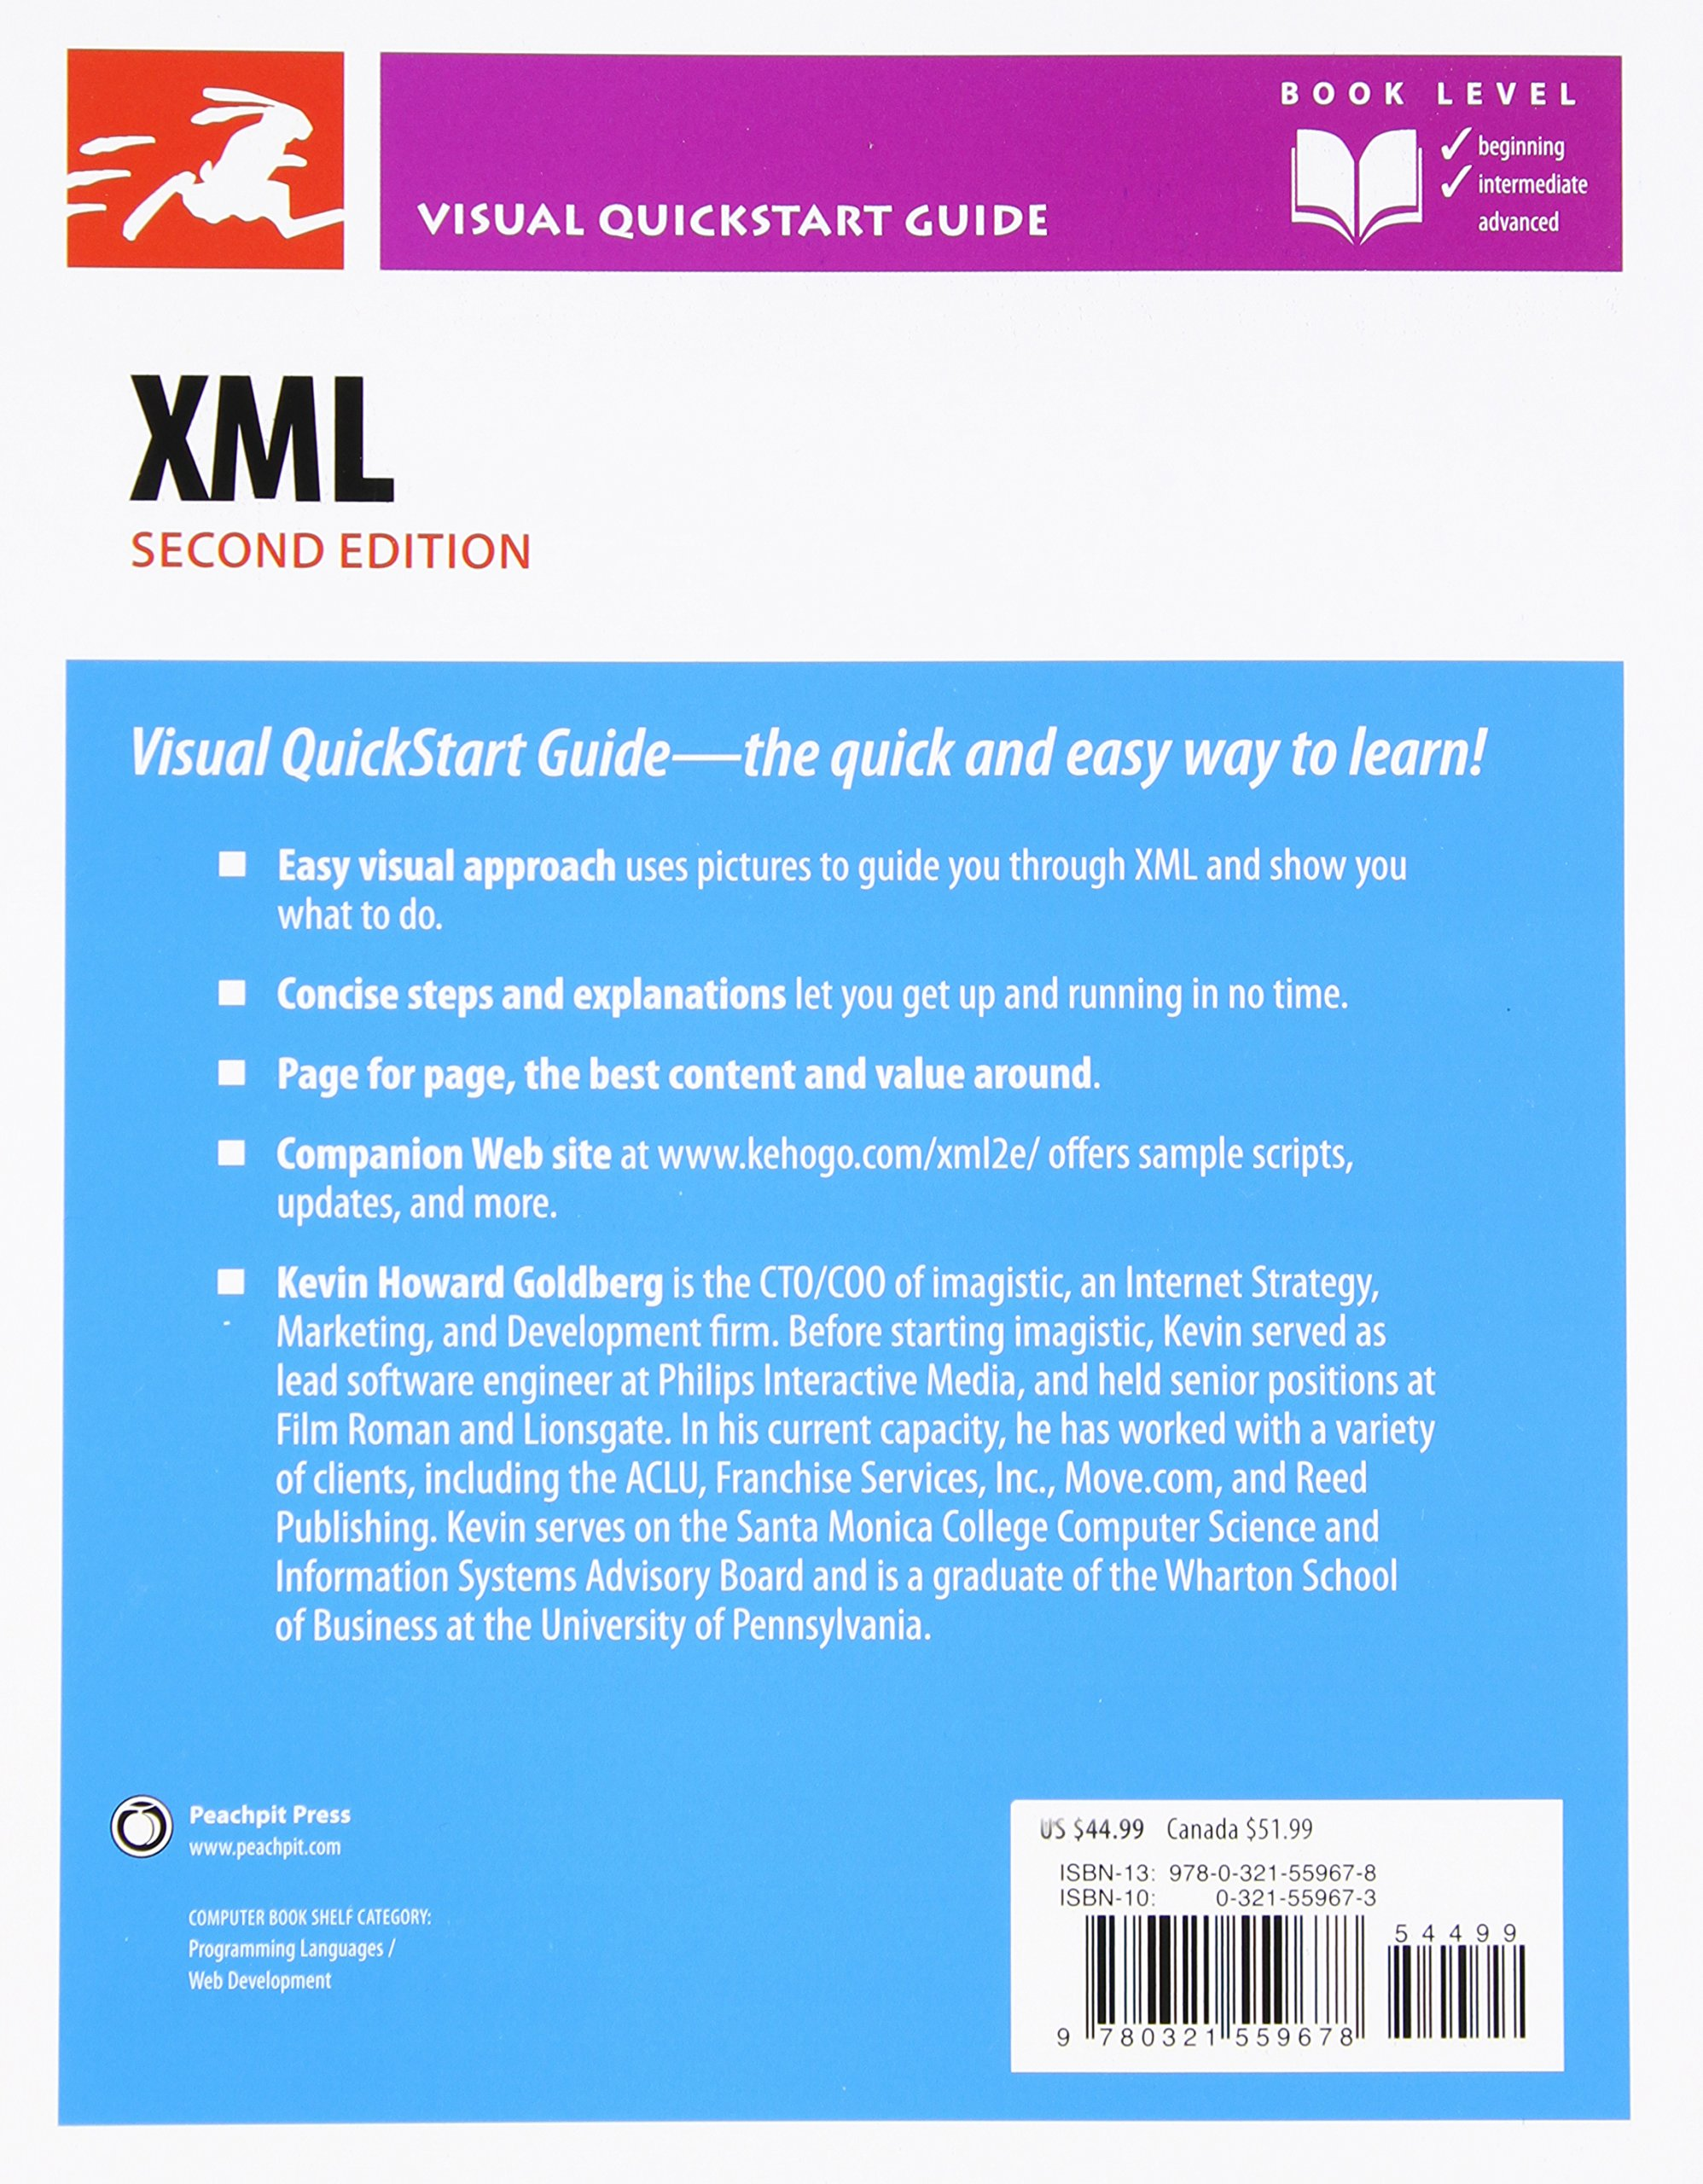 Image newsfeed: {ZE XML VISUAL QUICKSTART GUIDE 2ND EDITION PDF DOWNLOAD